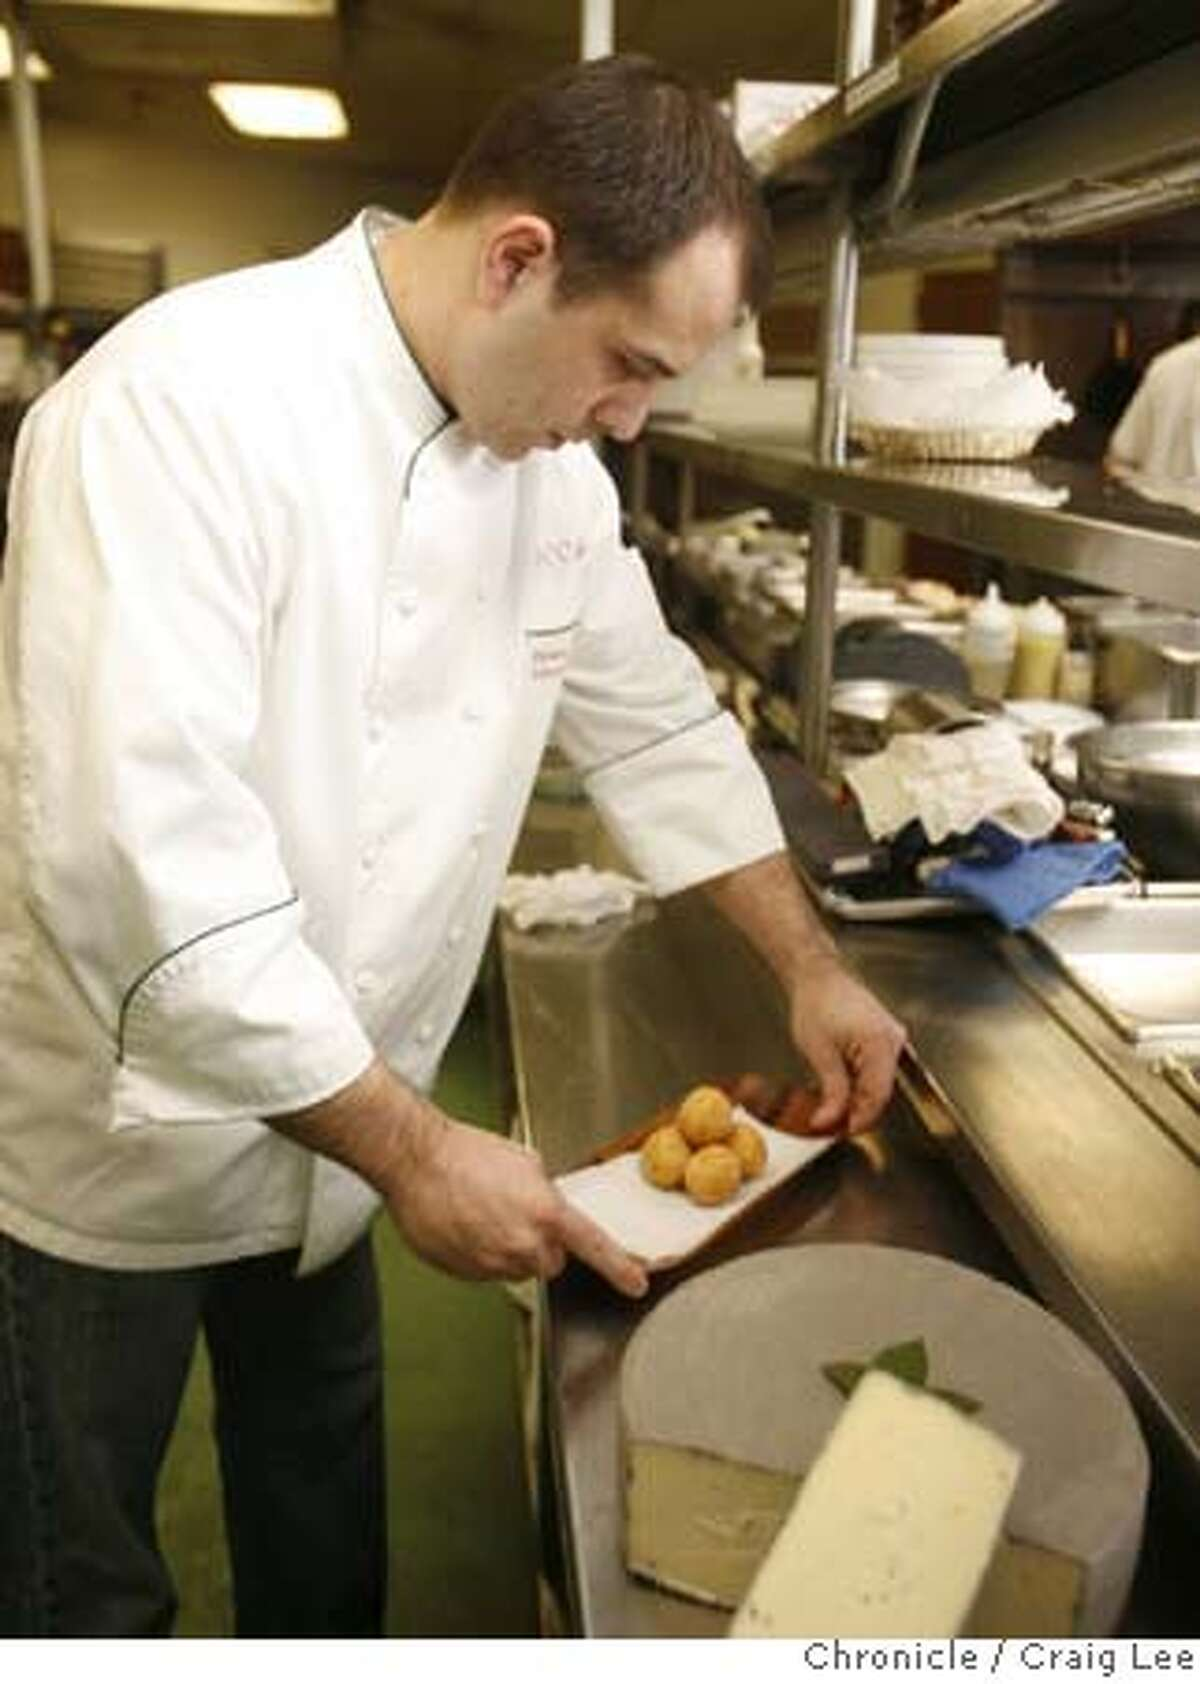 ###Live Caption:Richard Corbo, chef at Ducca preparing his dish, Crispy Risotto Fritter made with Spiced Sottocenere Cheese and Vialone Nano Rice. photo by Craig Lee / The Chronicle###Caption History:Richard Corbo, chef at Ducca preparing his dish, Crispy Risotto Fritter made with Spiced Sottocenere Cheese and Vialone Nano Rice. photo by Craig Lee / The Chronicle###Notes:Craig Lee 415-218-8597 clee@sfchronicle.com###Special Instructions:MANDATORY CREDIT FOR PHOTOG AND SF CHRONICLE/NO SALES-MAGS OUT